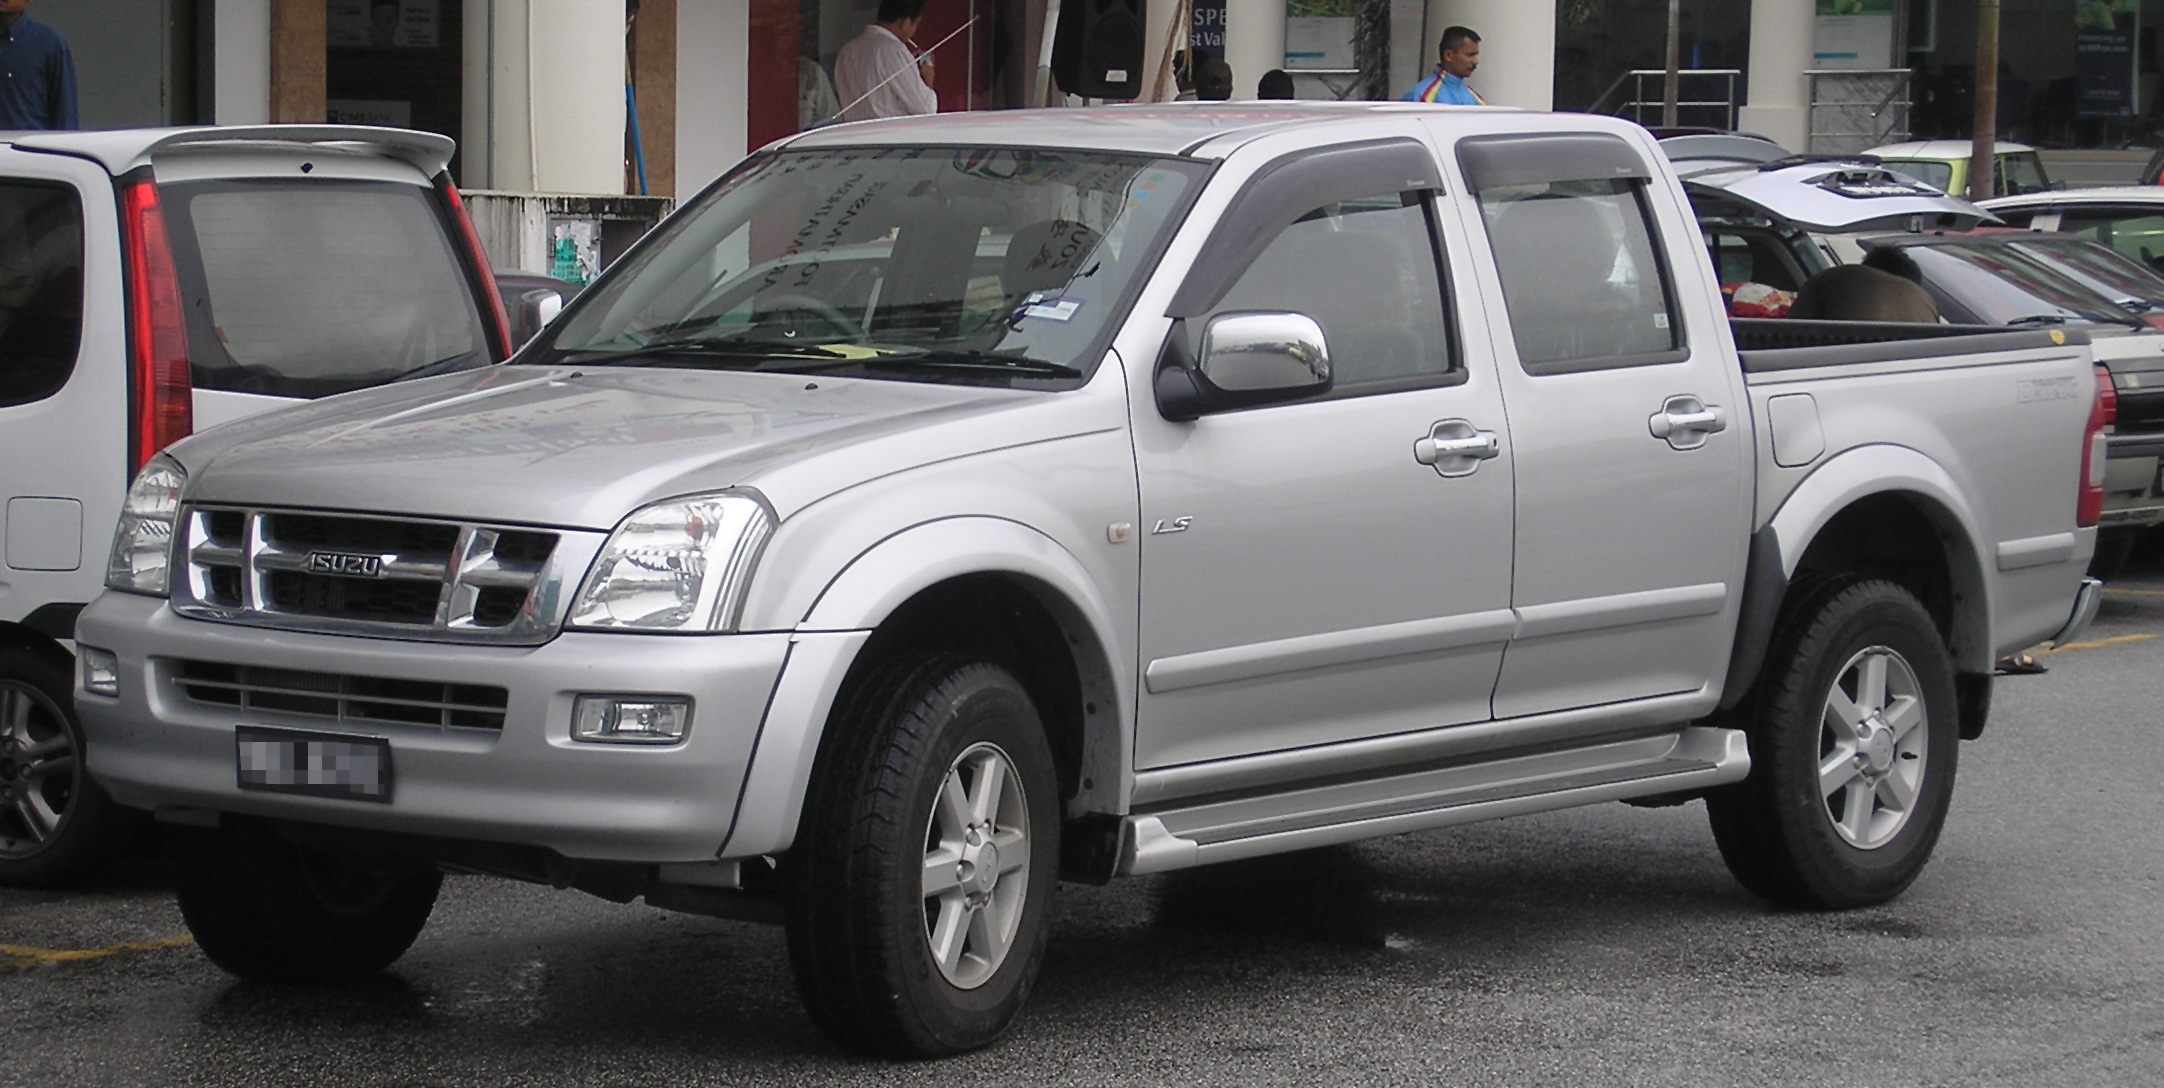 Isuzu D-max | The Truth About Cars